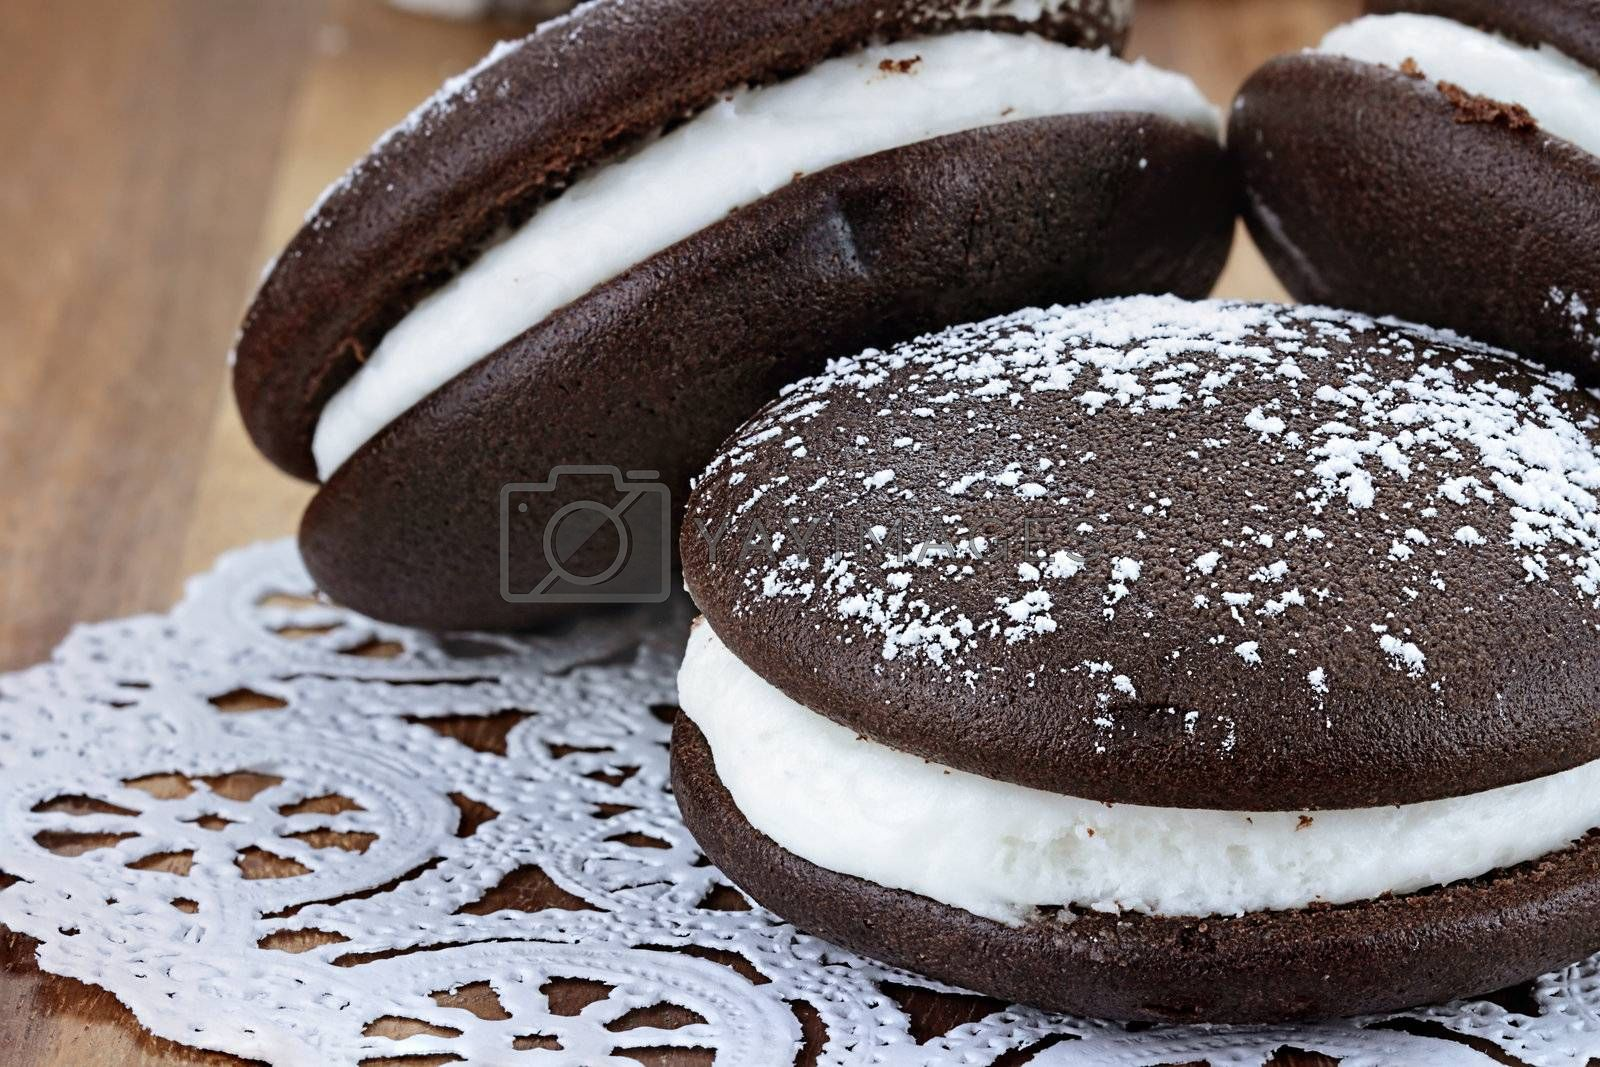 Macro image of three whoopie pies or moon pies with powdered sugar. Shallow depth of field.